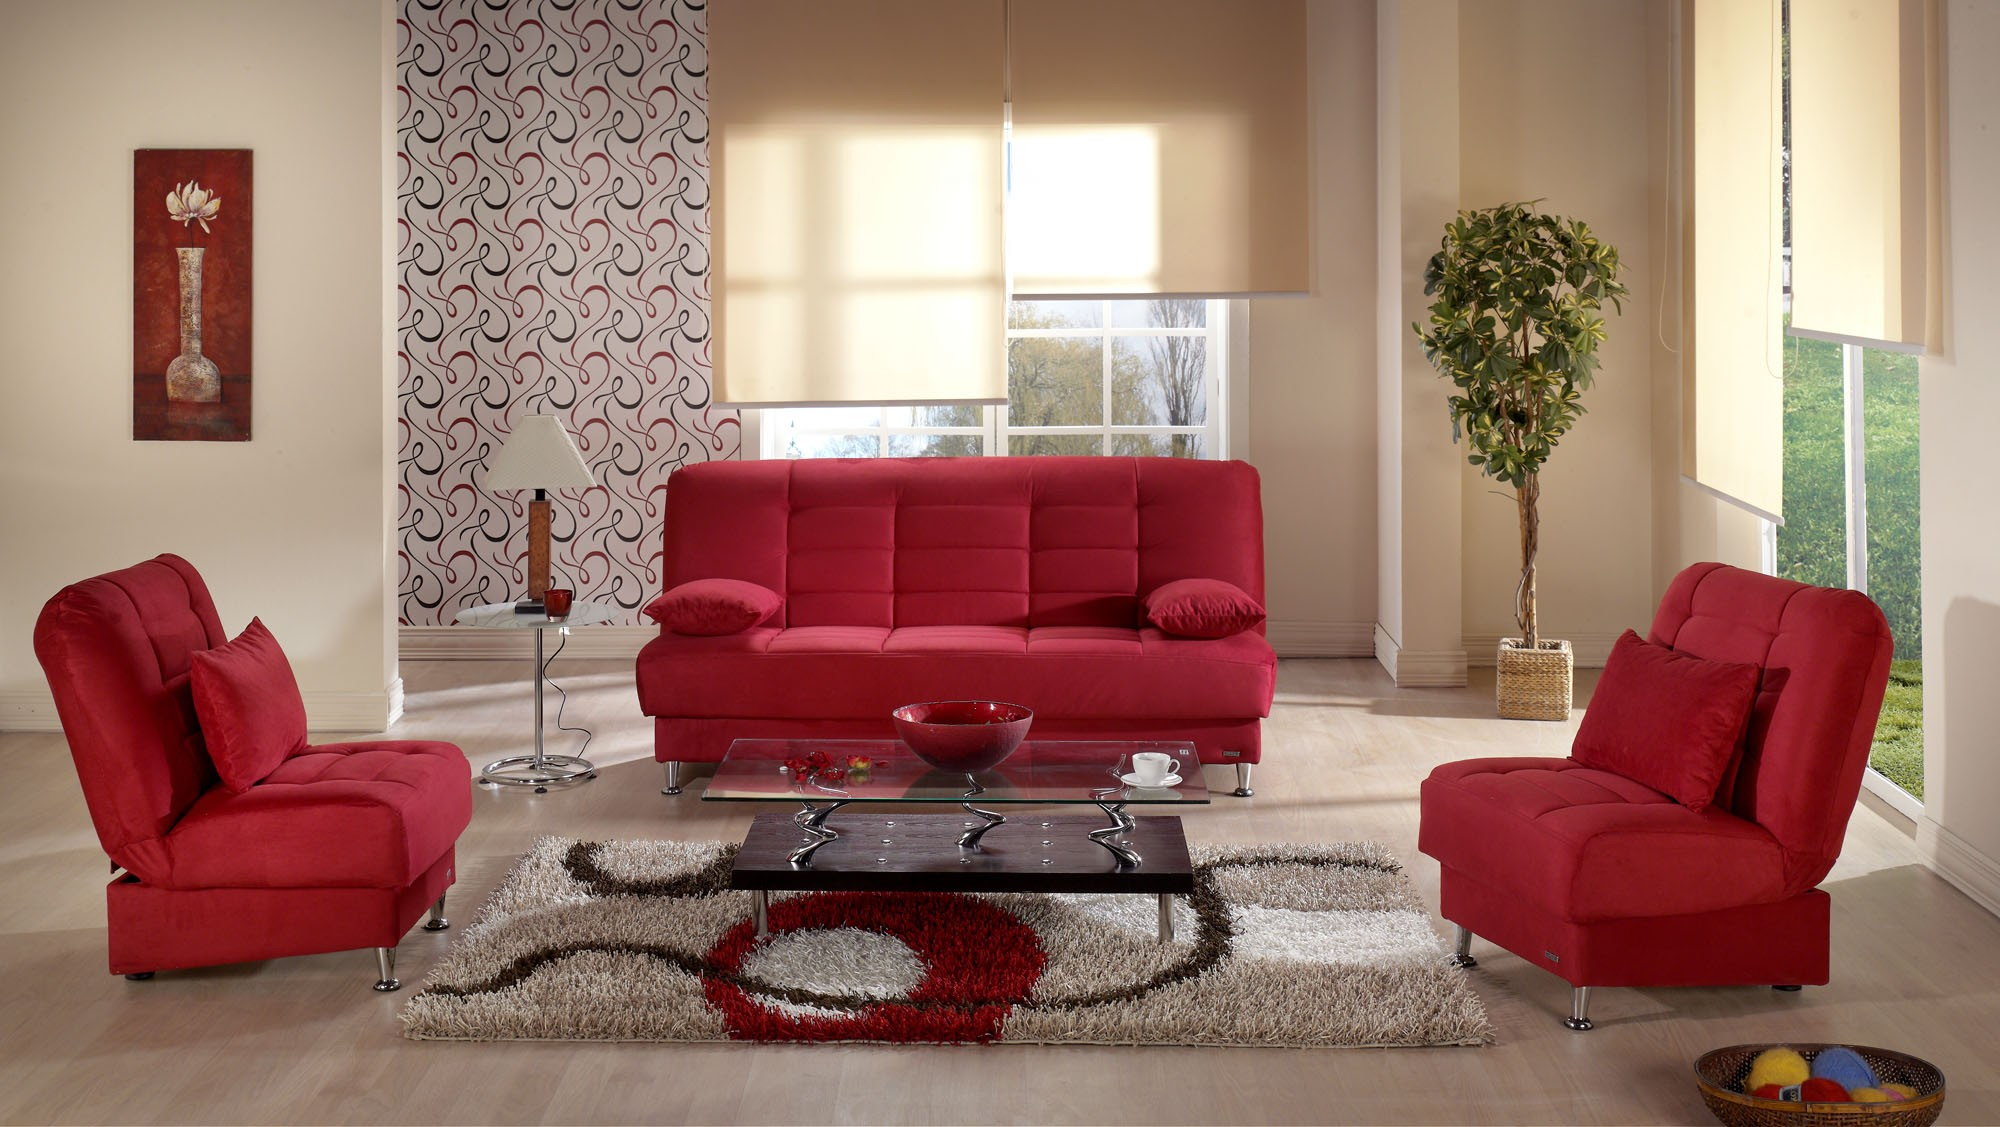 Vegas 3 seat sleeper Rainbow red By Sunset from NOVA interiors